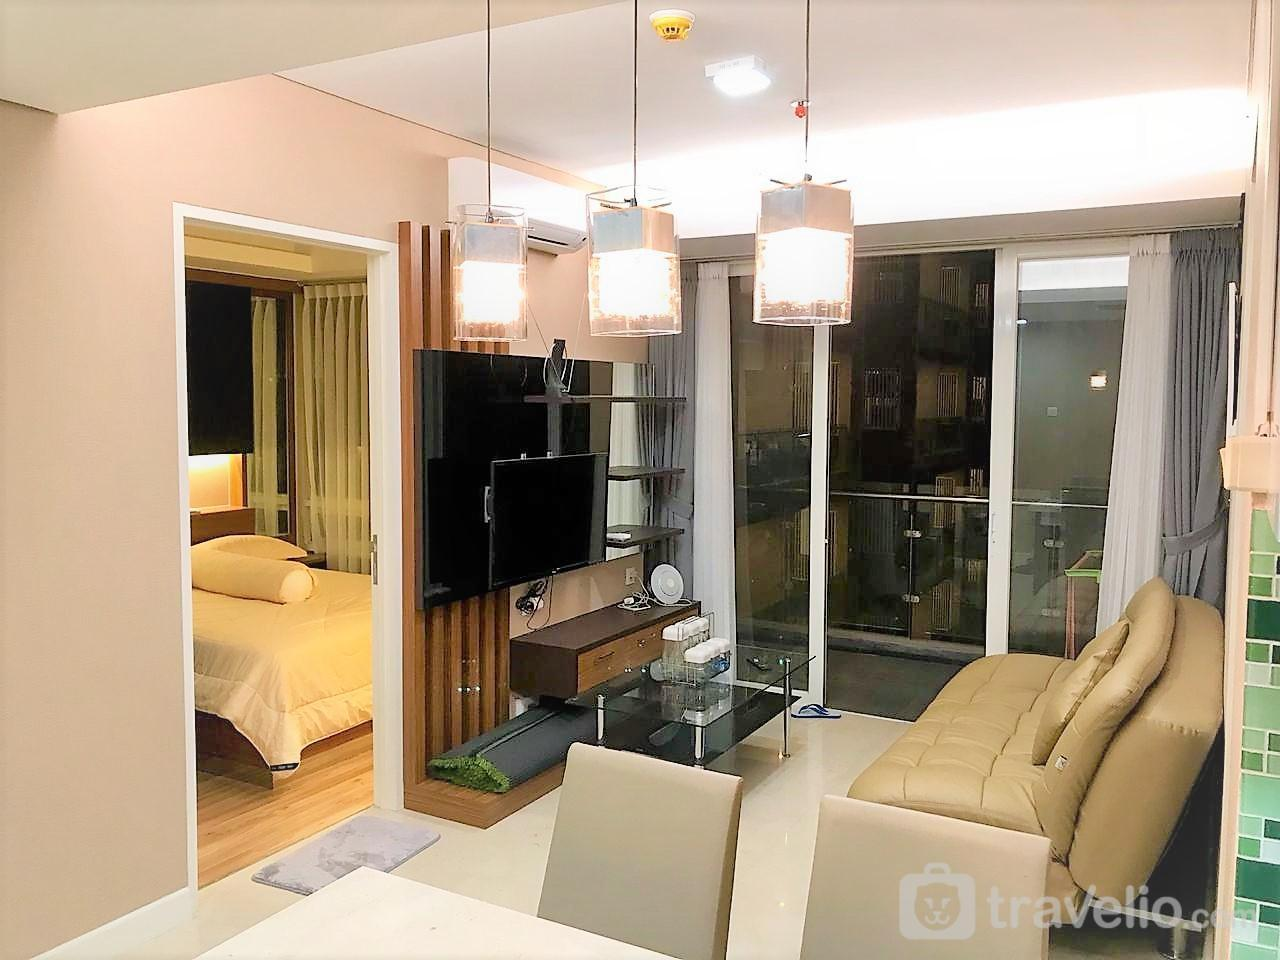 Landmark Residence Bandung - 2BR with Garden View @ Landmark Residence by Randy